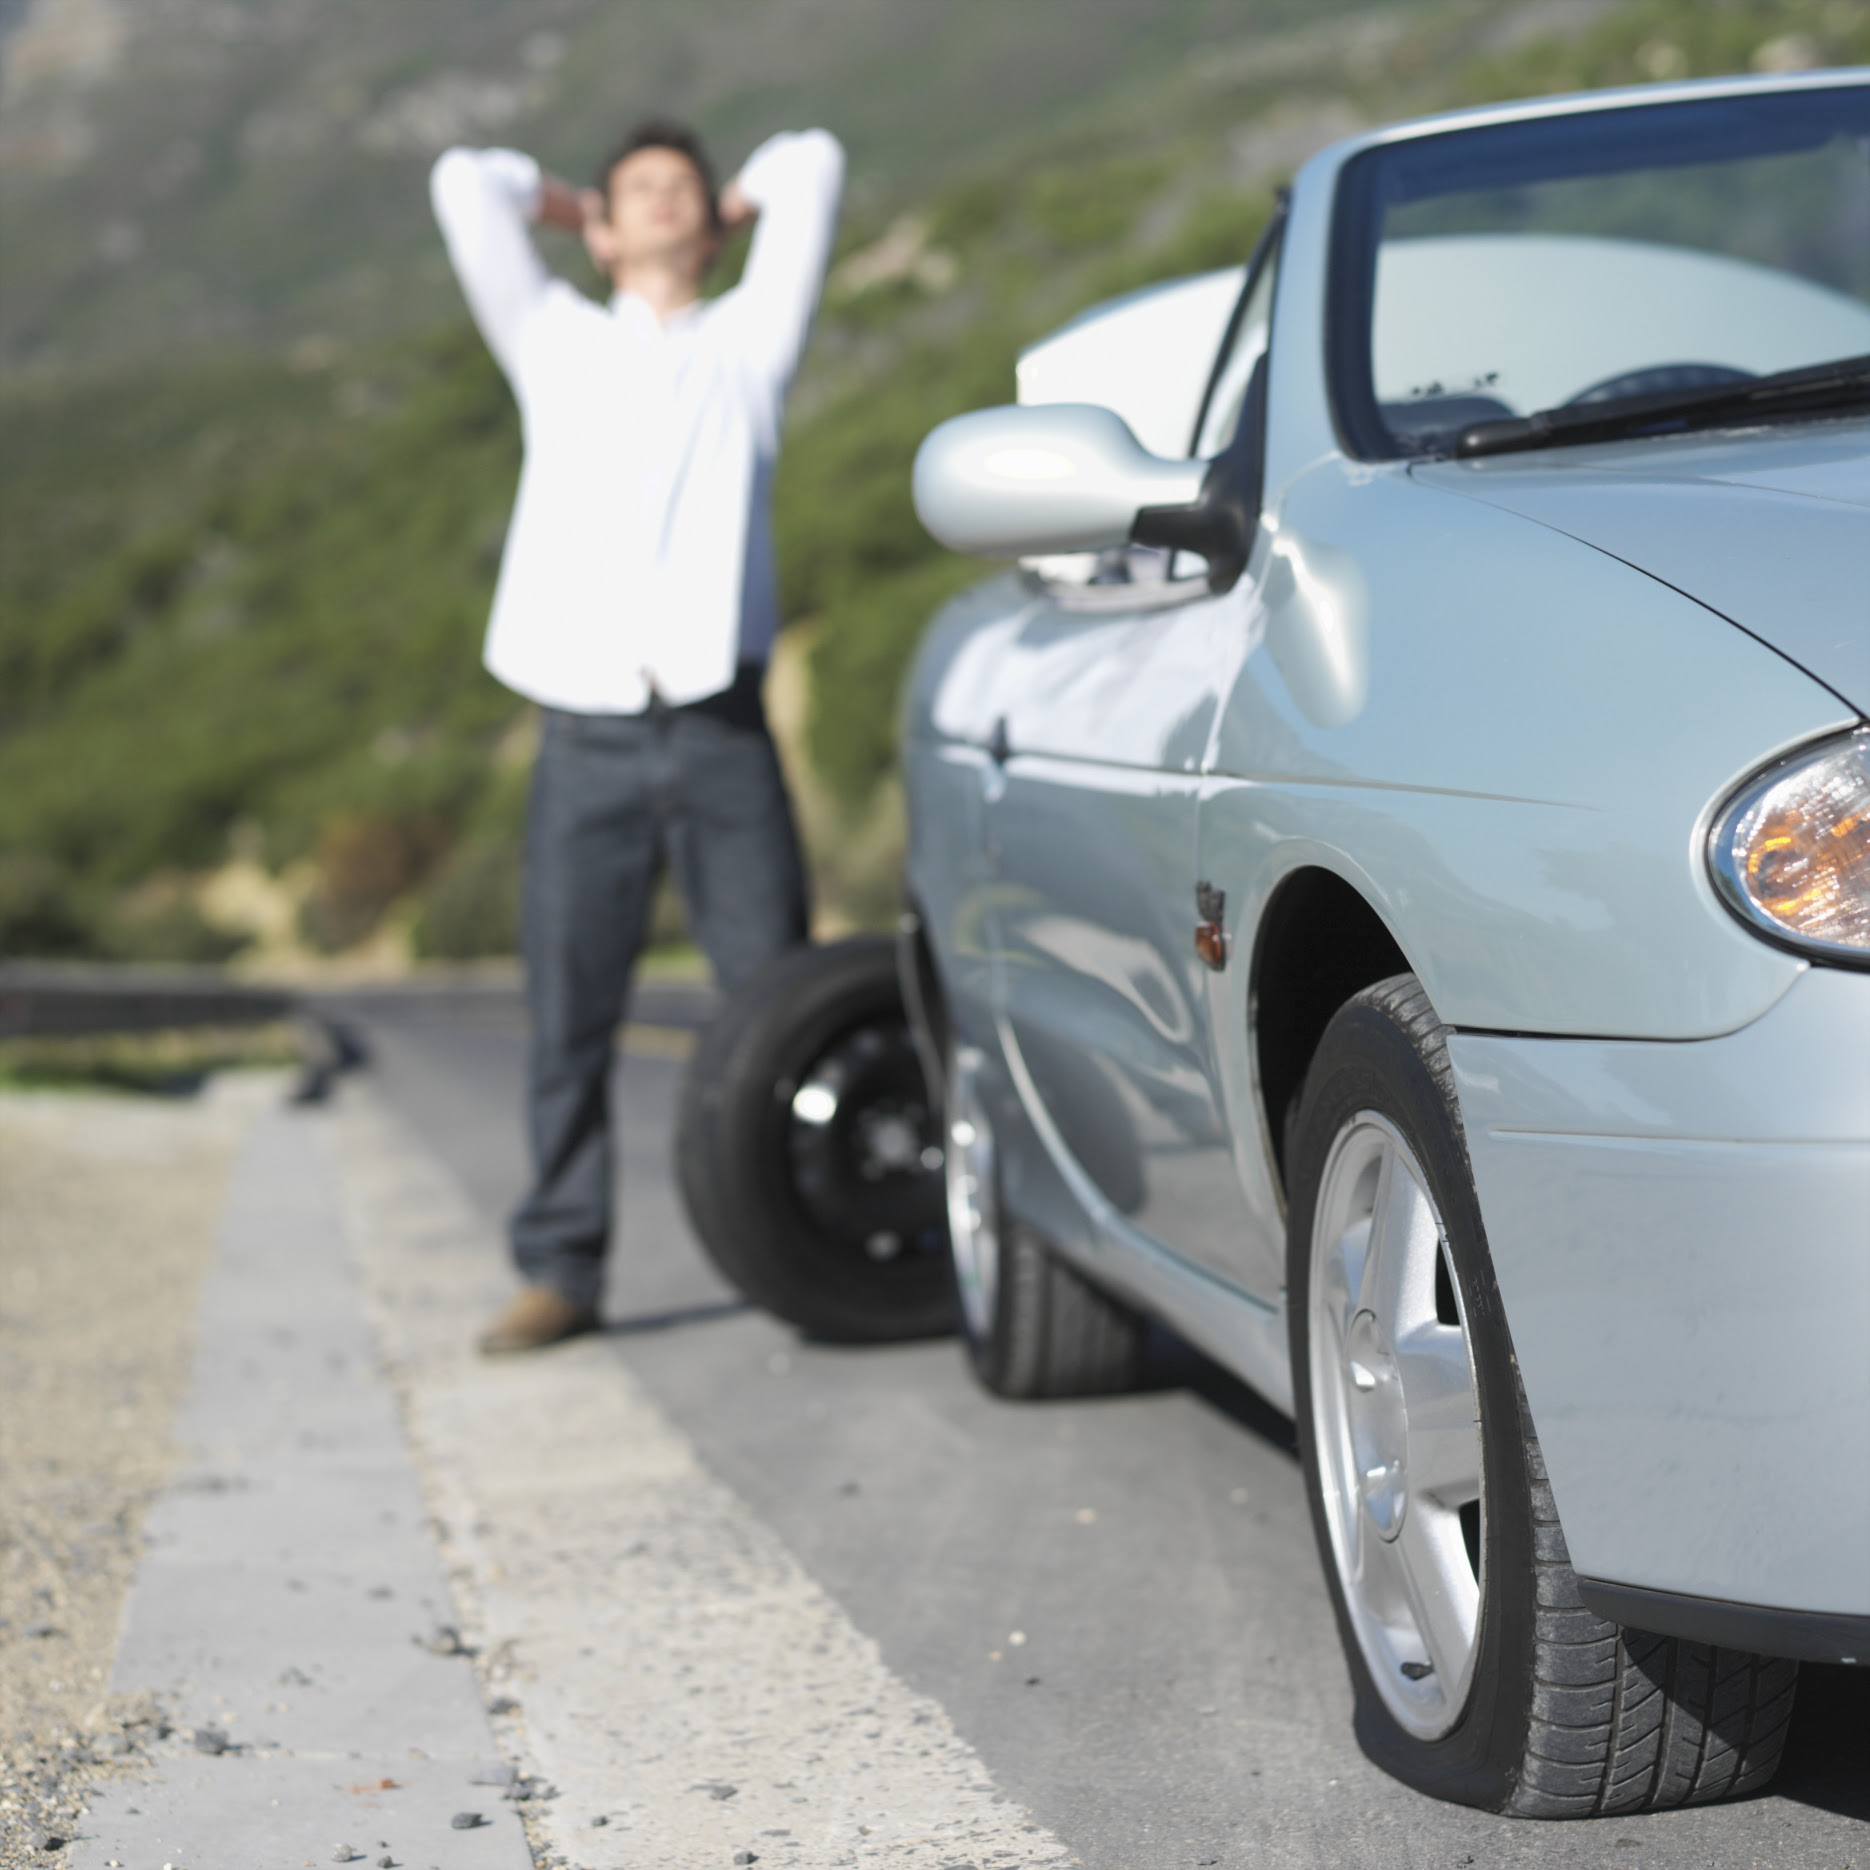 Discount Tire Provides Top 10 Tire Tips For Labor Day Road Trips